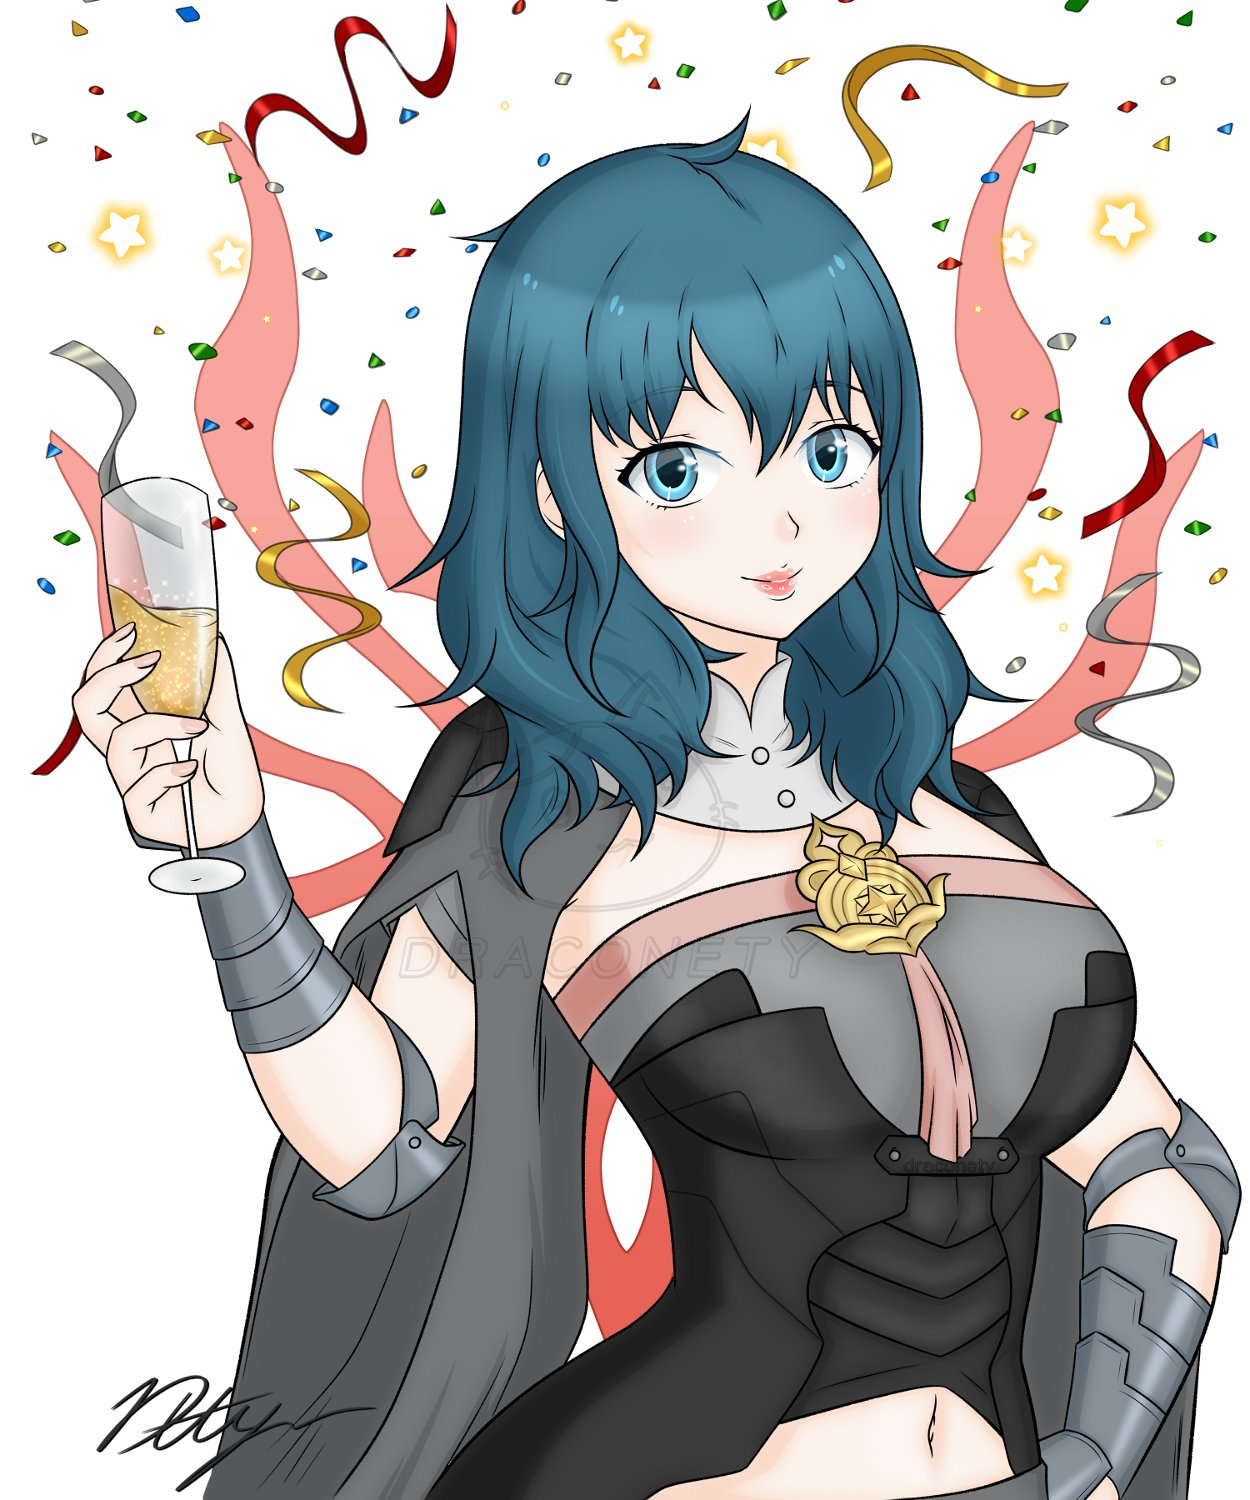 1girl alcohol armor bangs blue_eyes blue_hair breasts byleth_(fire_emblem) byleth_eisner_(female) celebration champagne champagne_flute confetti cup cute draconety drinking_glass female_my_unit_(fire_emblem:_fuukasetsugetsu) fire_emblem fire_emblem:_fuukasetsugetsu fire_emblem:_three_houses fire_emblem_16 hair_between_eyes highres intelligent_systems large_breasts lips looking_at_viewer medium_hair my_unit_(fire_emblem:_fuukasetsugetsu) navel navel_cutout nintendo parted_lips signature simple_background smile solo super_smash_bros. vambraces watermark